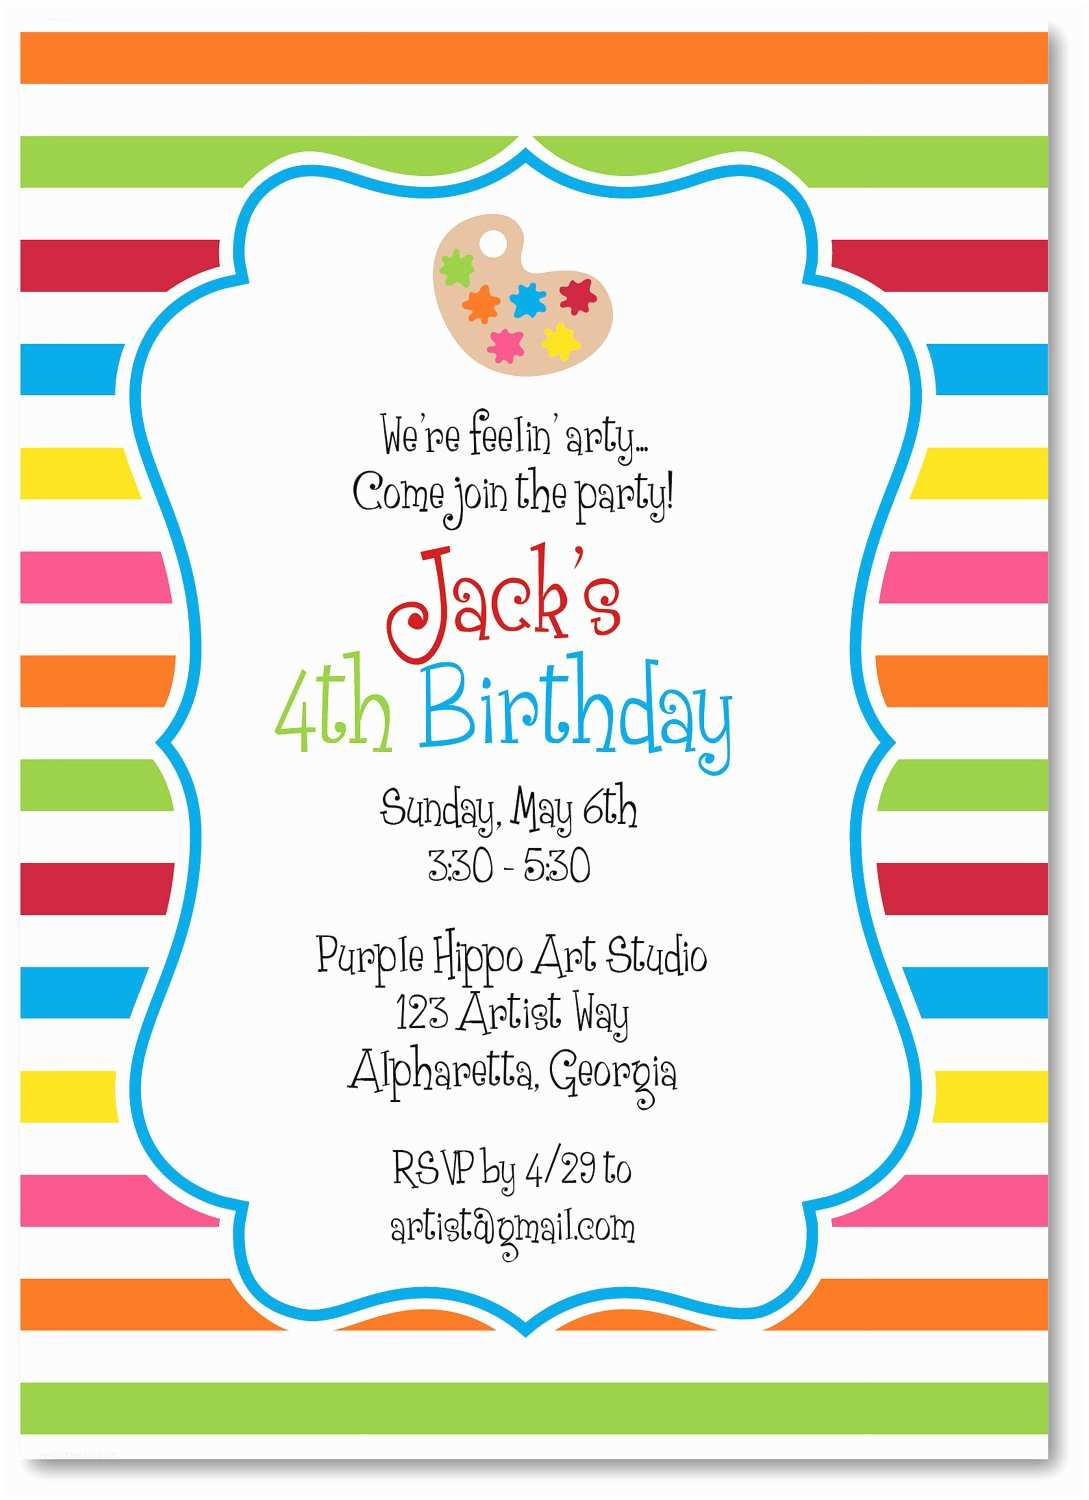 Painting Party Invitations Art Party Invitations